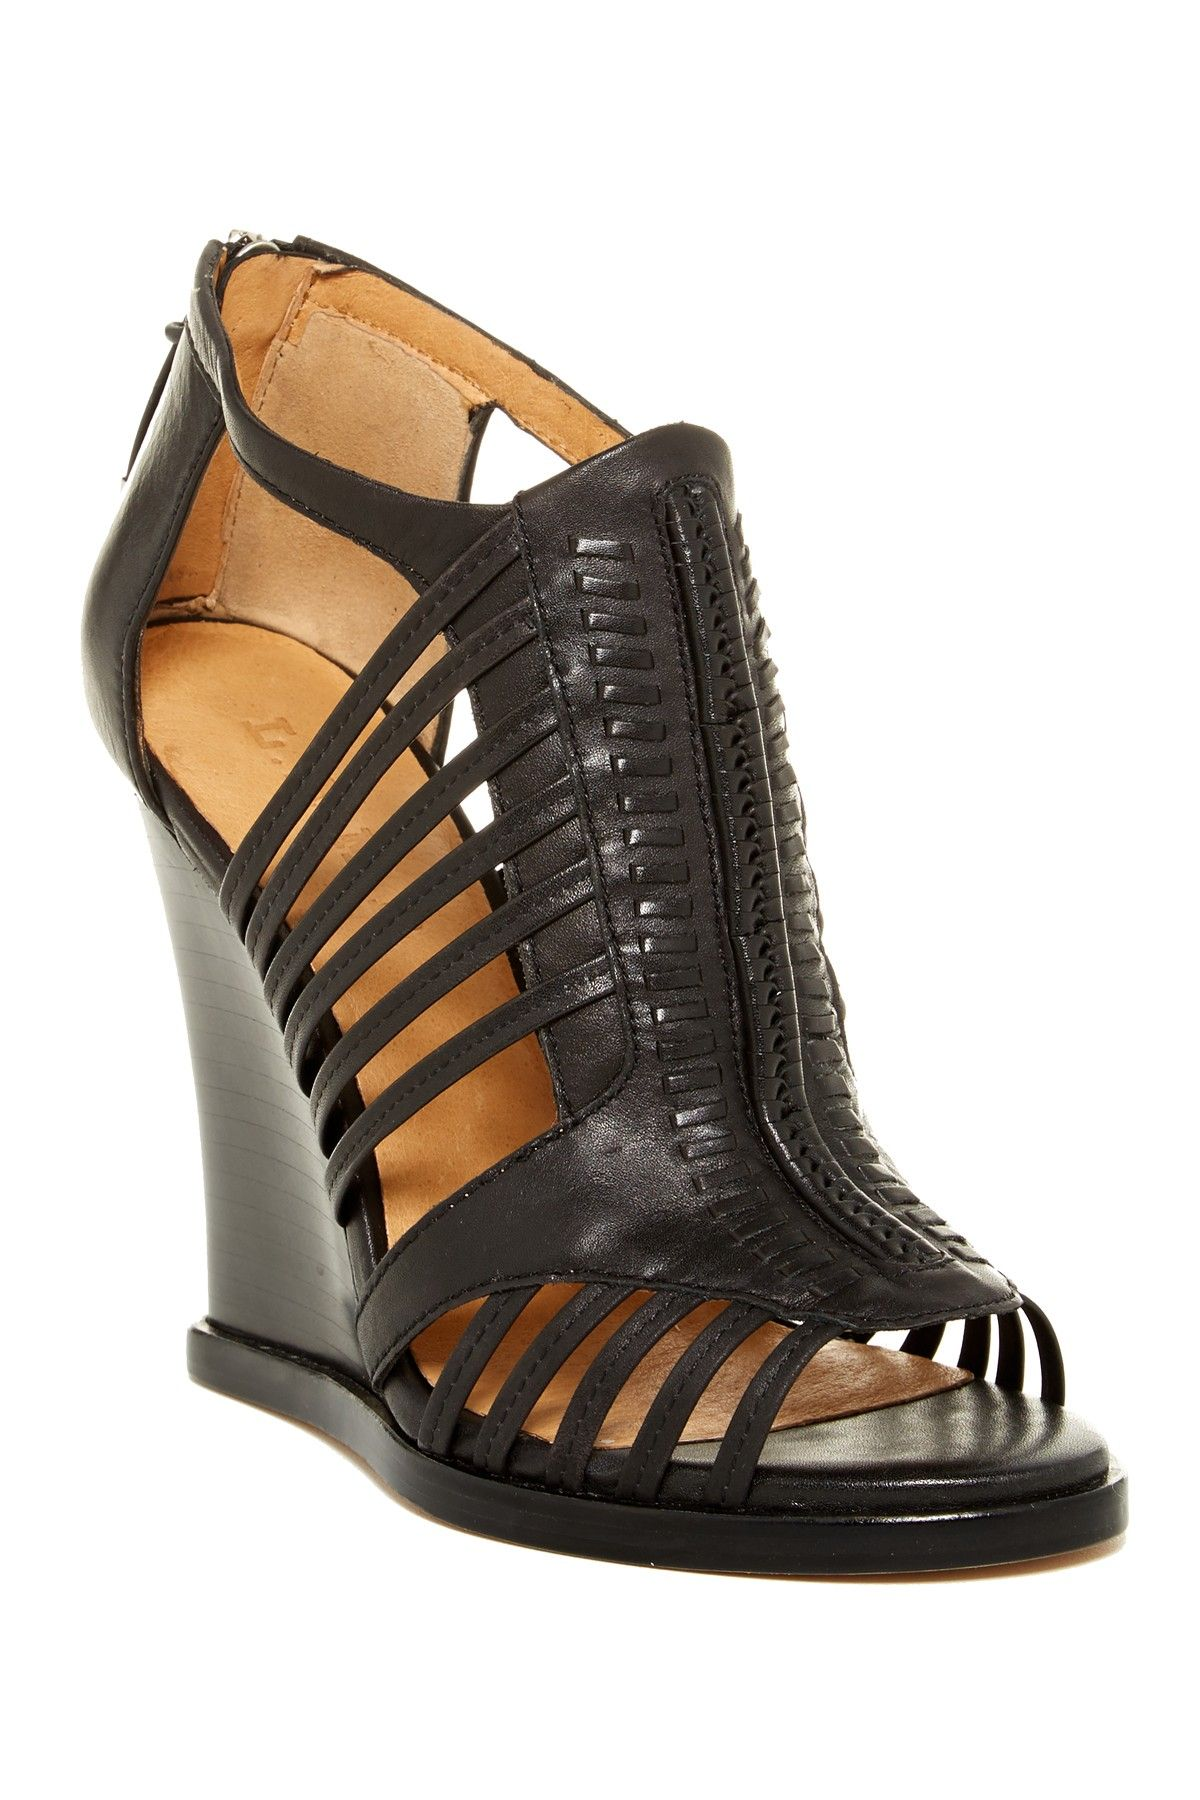 907fe683cc87 Kaylee Wedge Sandal by L.A.M.B. on  nordstrom rack Of course I had to buy  them!